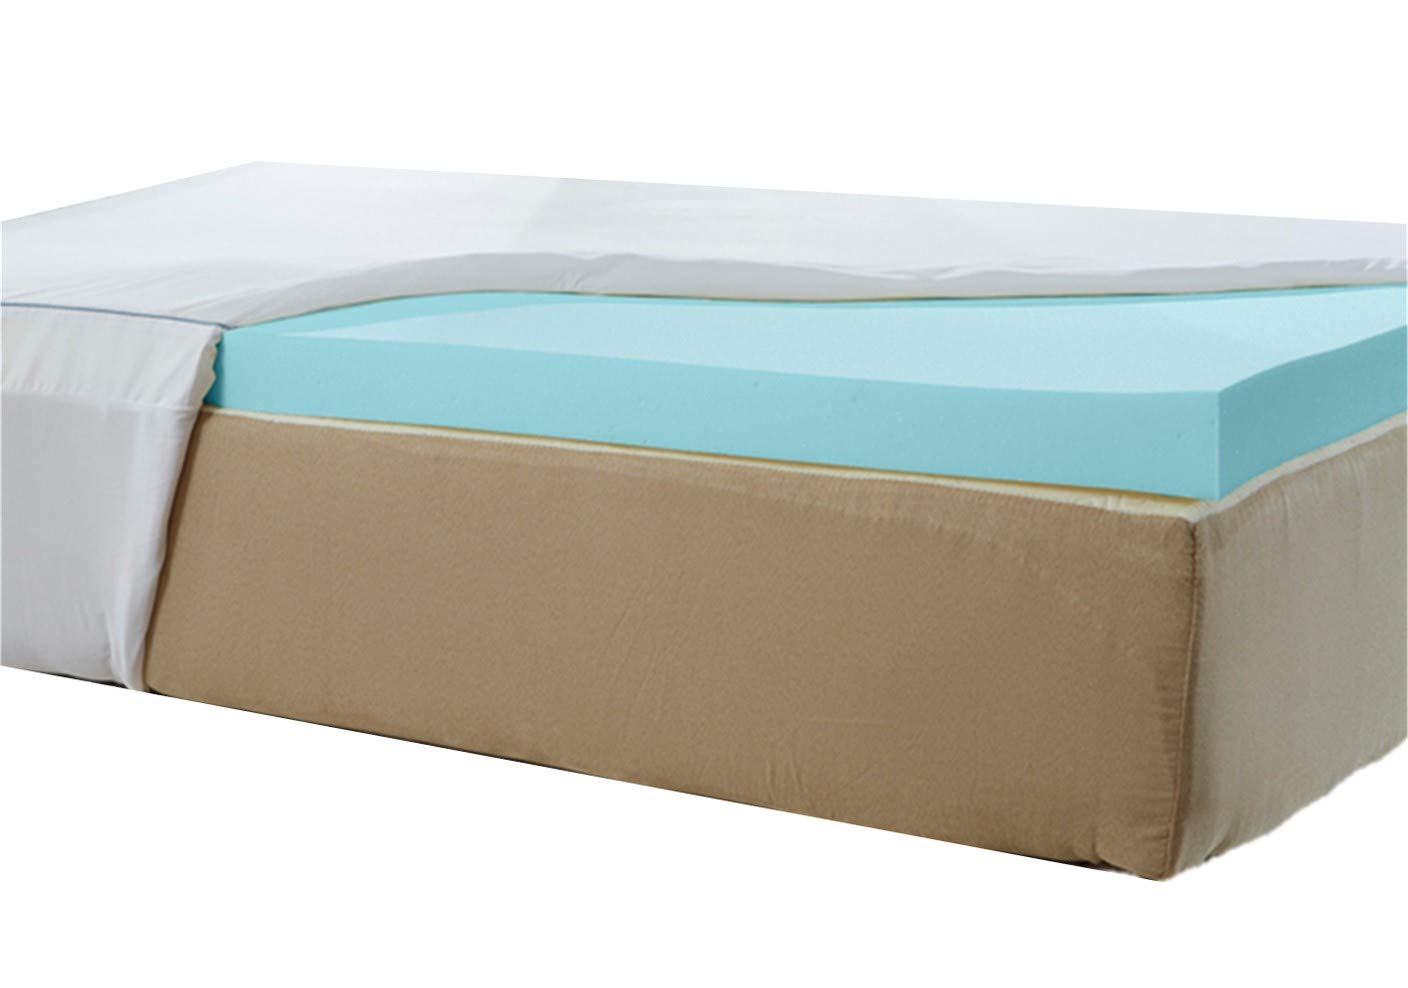 Natures Sleep Thick AirCool IQ Cal King Size 3 Inch Thick 3.25lb Density Gel Memory Foam Mattress Topper with Microfiber Fitted Cover and 18 Inch Skirt